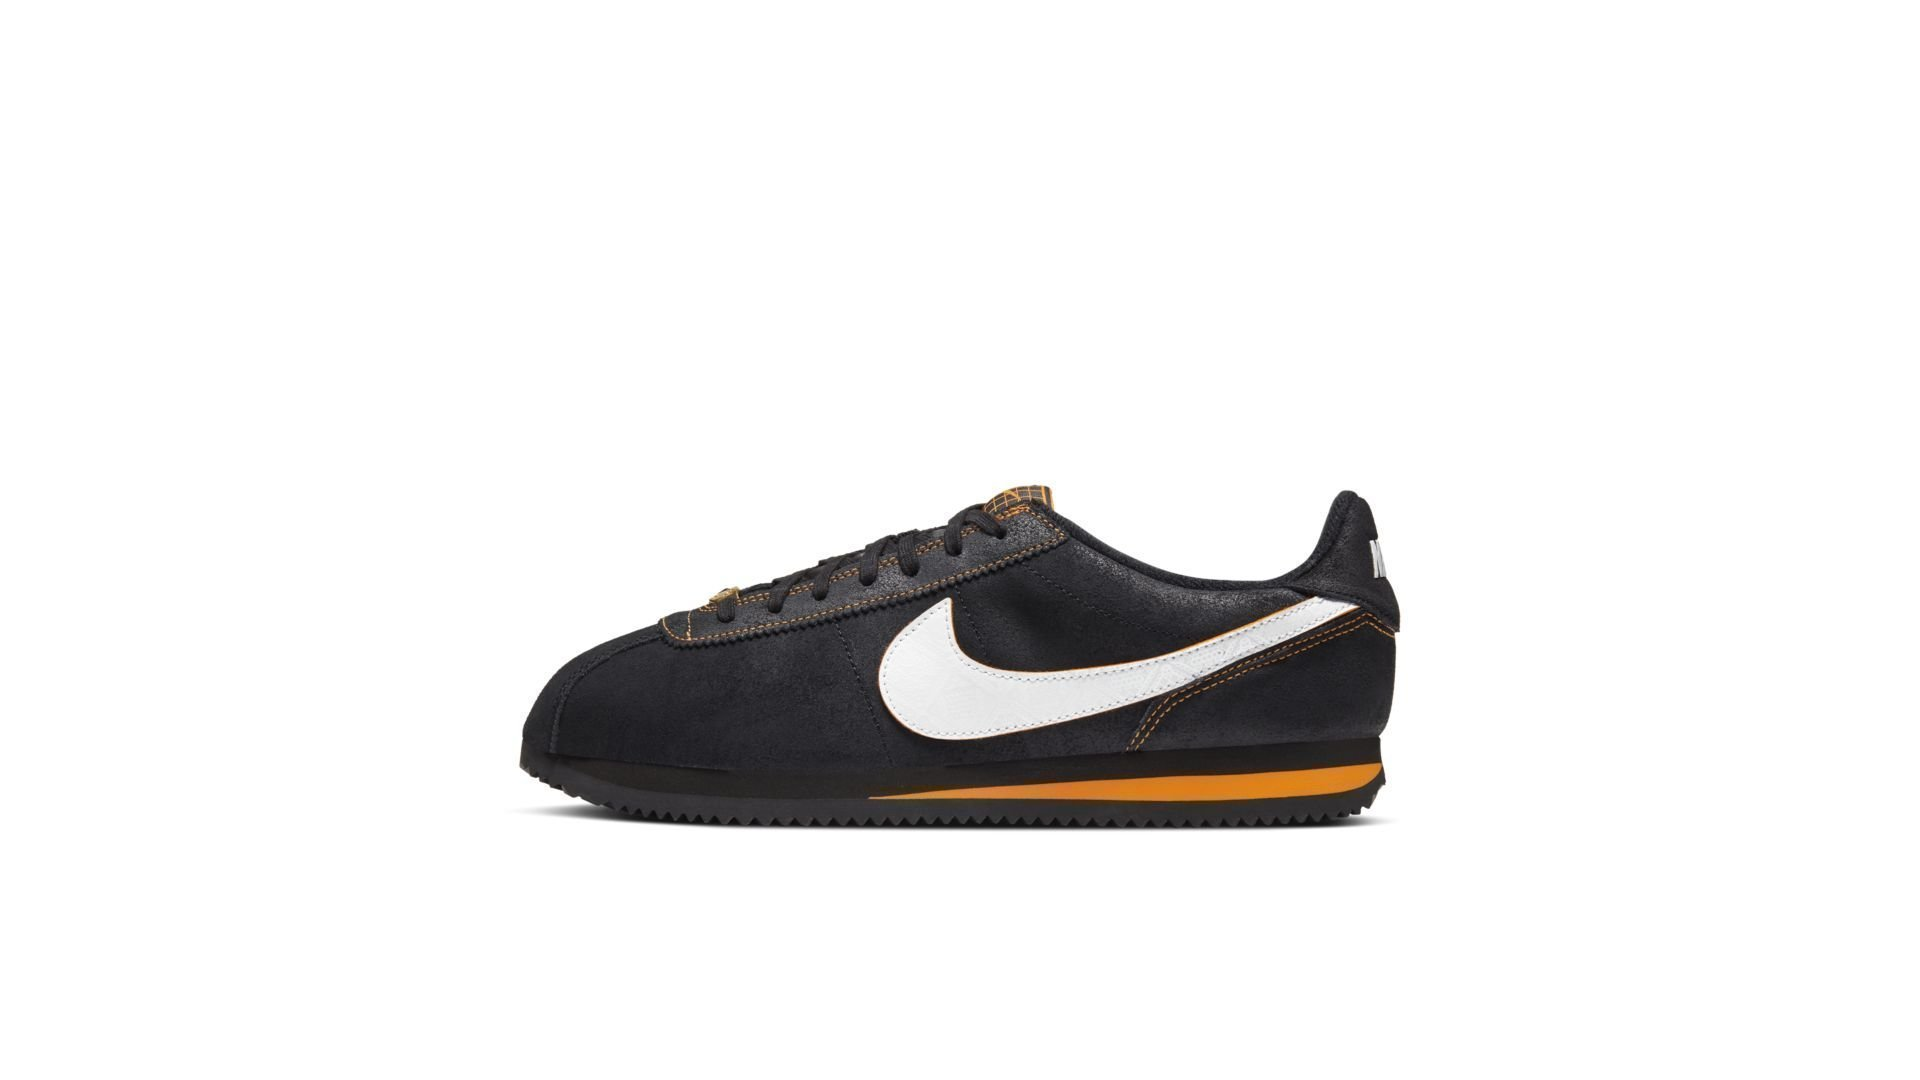 Nike Classic Cortez Day of the Dead (2019) (CT3731-001)